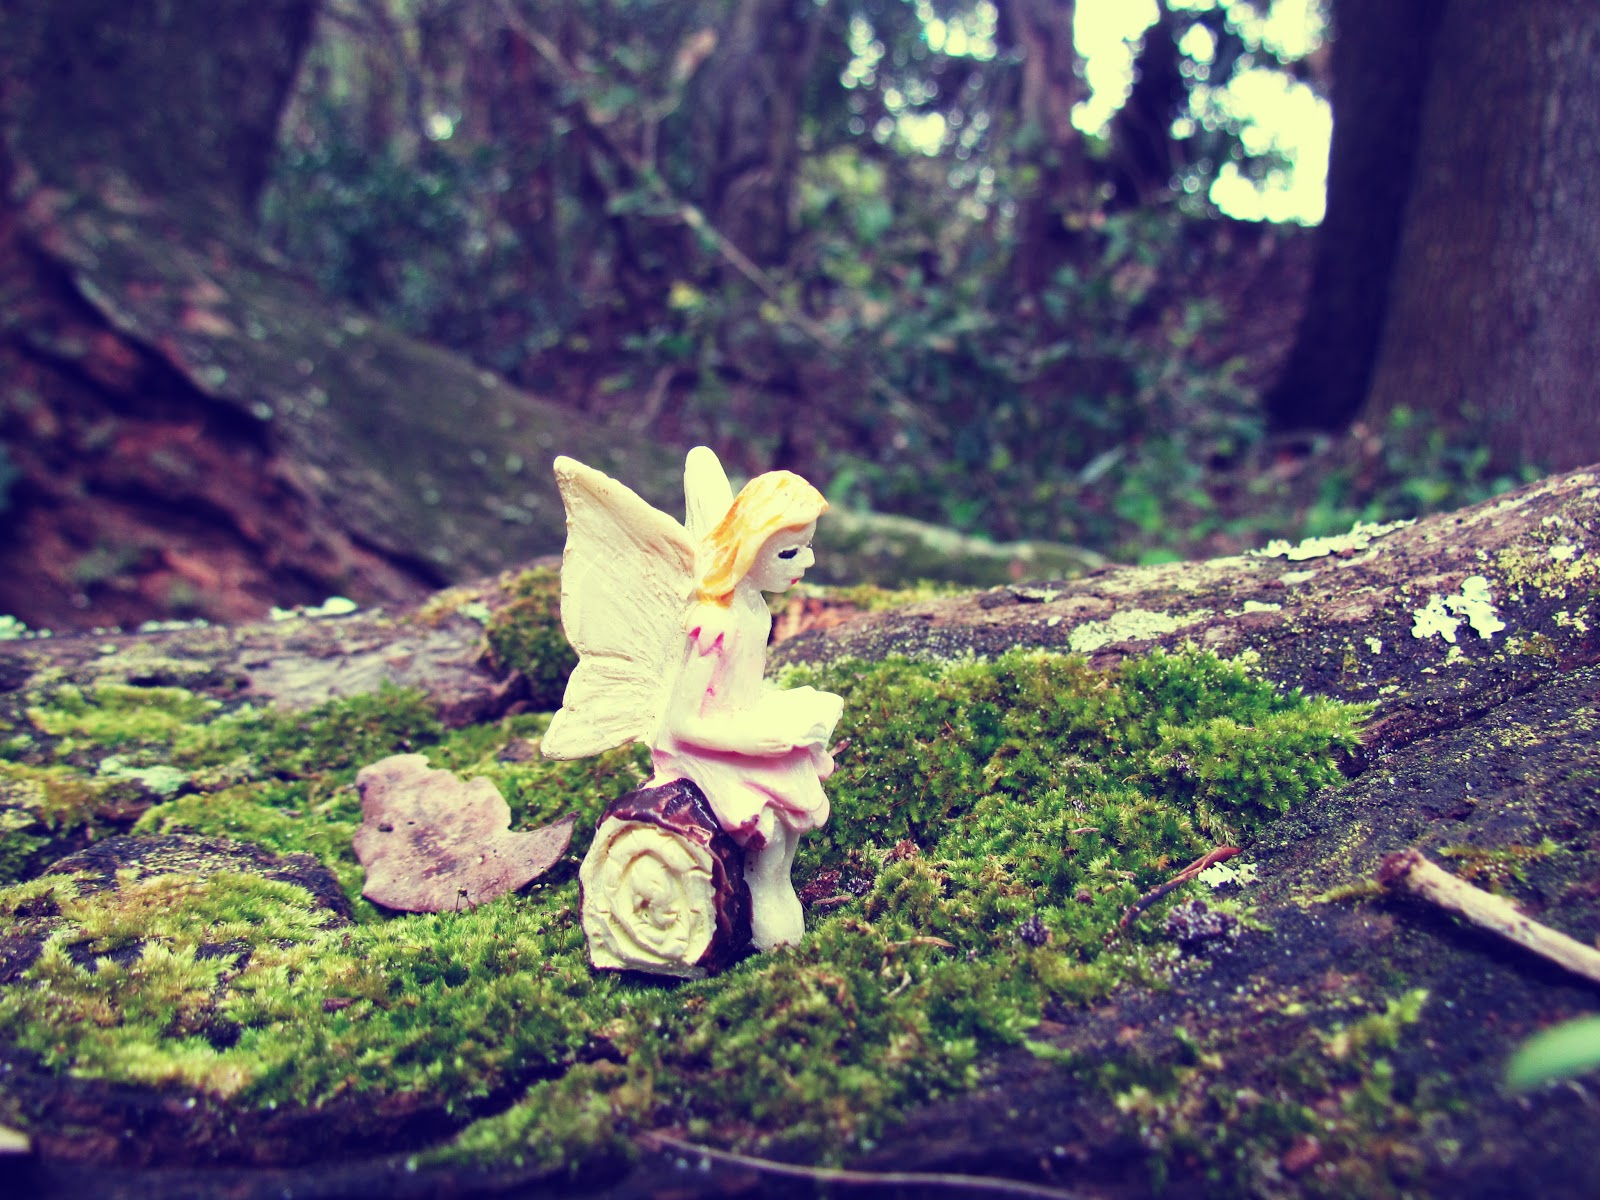 A fairy girl figurine reading a book on a mossy oak tree in the park